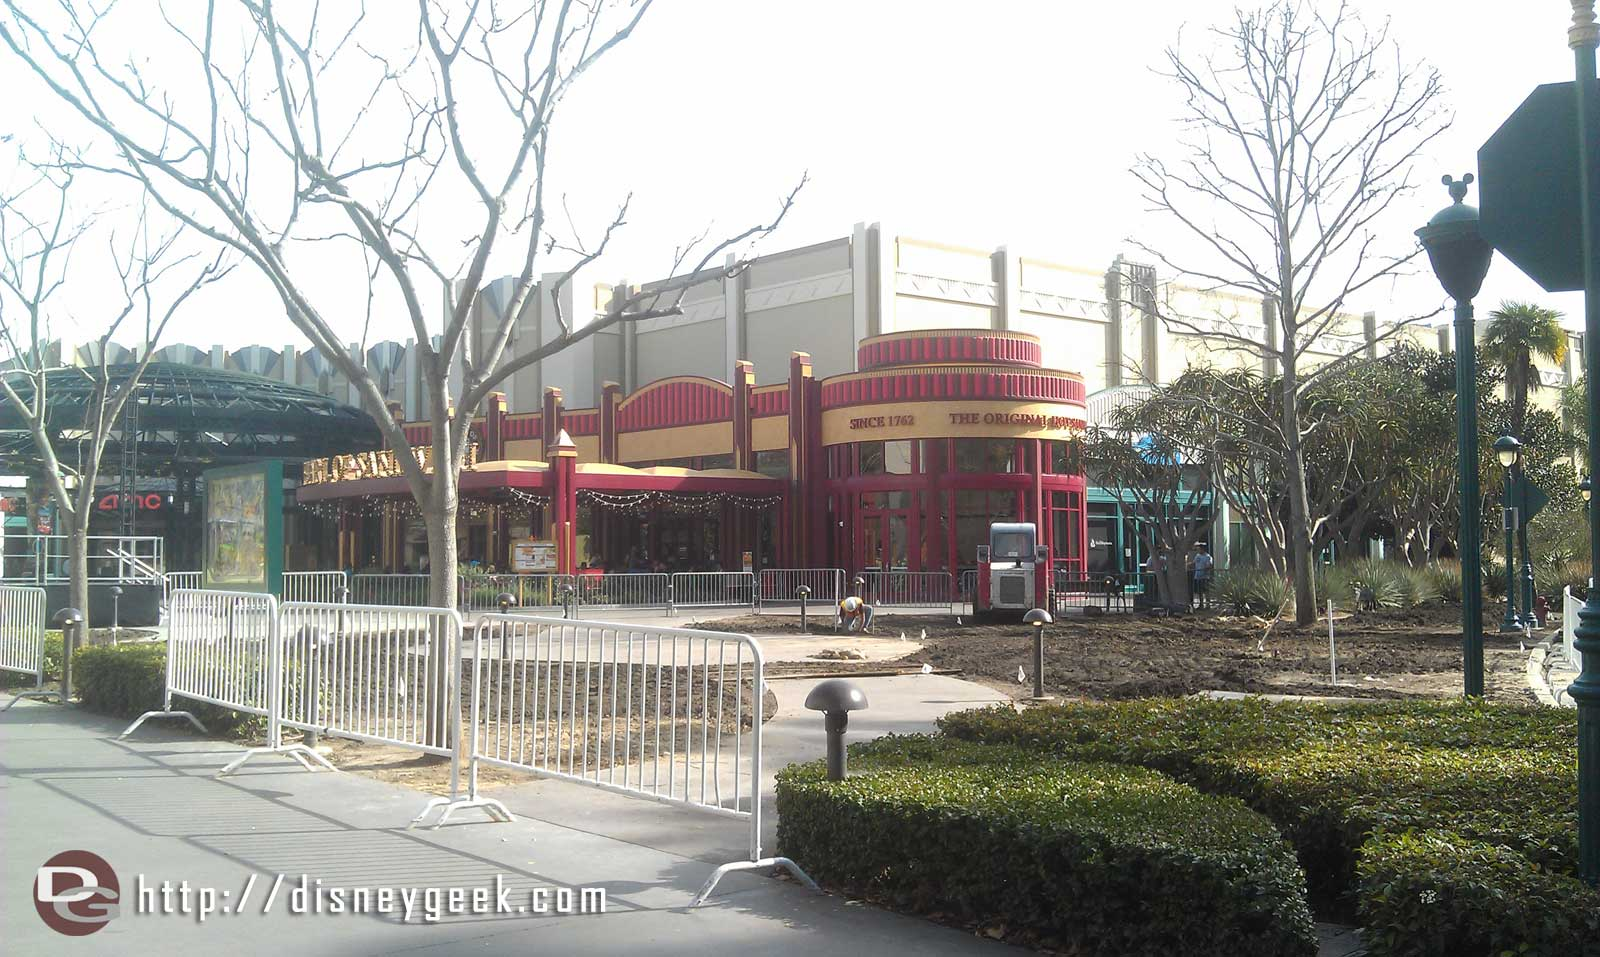 Just arrived at the #Disneyland Resort.  Still working on replacing the lawn where the ice rink was.